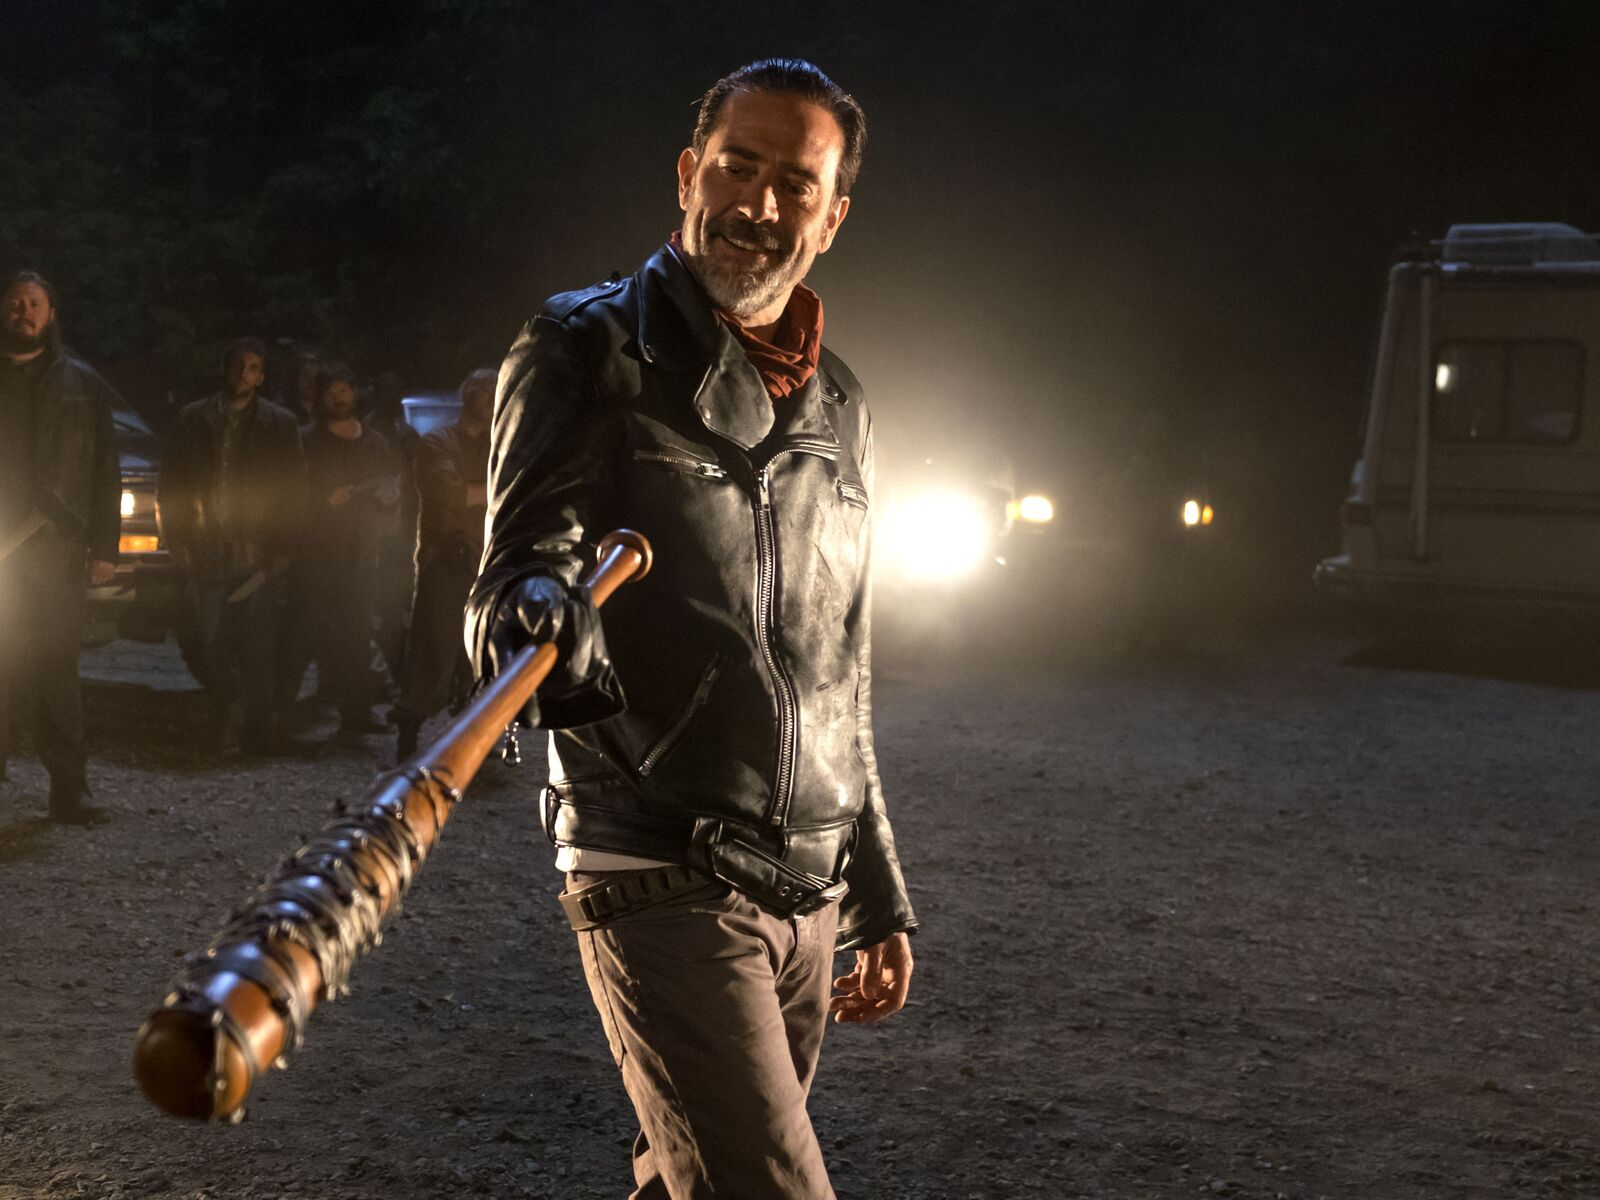 1600x1200 Negan The Walking Dead Season 7 1600x1200